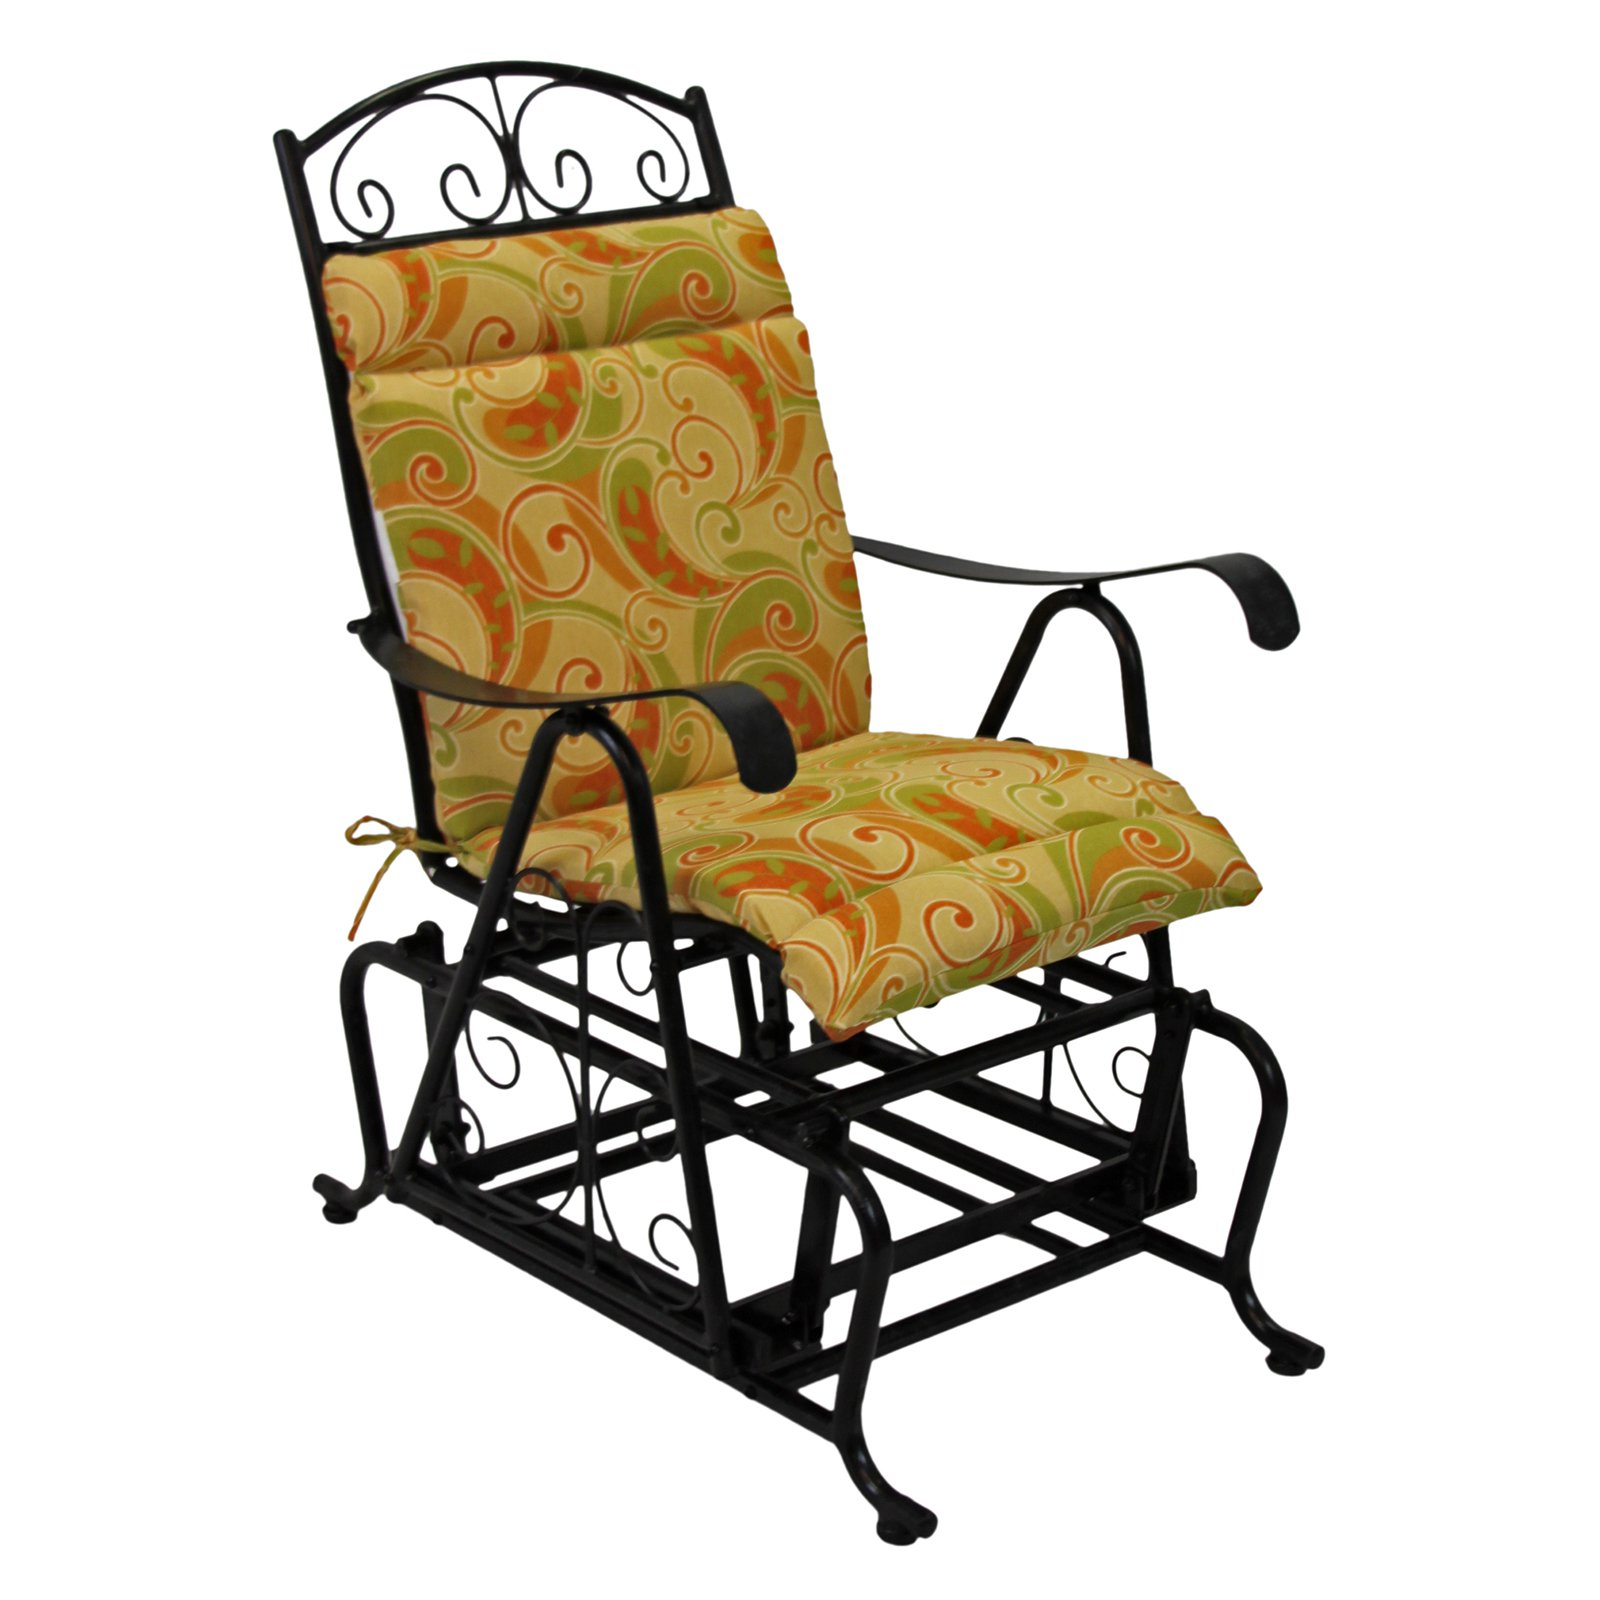 Blazing Needles Outdoor Glider Chair Hinged Seat & Back Regarding Outdoor Fabric Glider Benches (View 13 of 25)